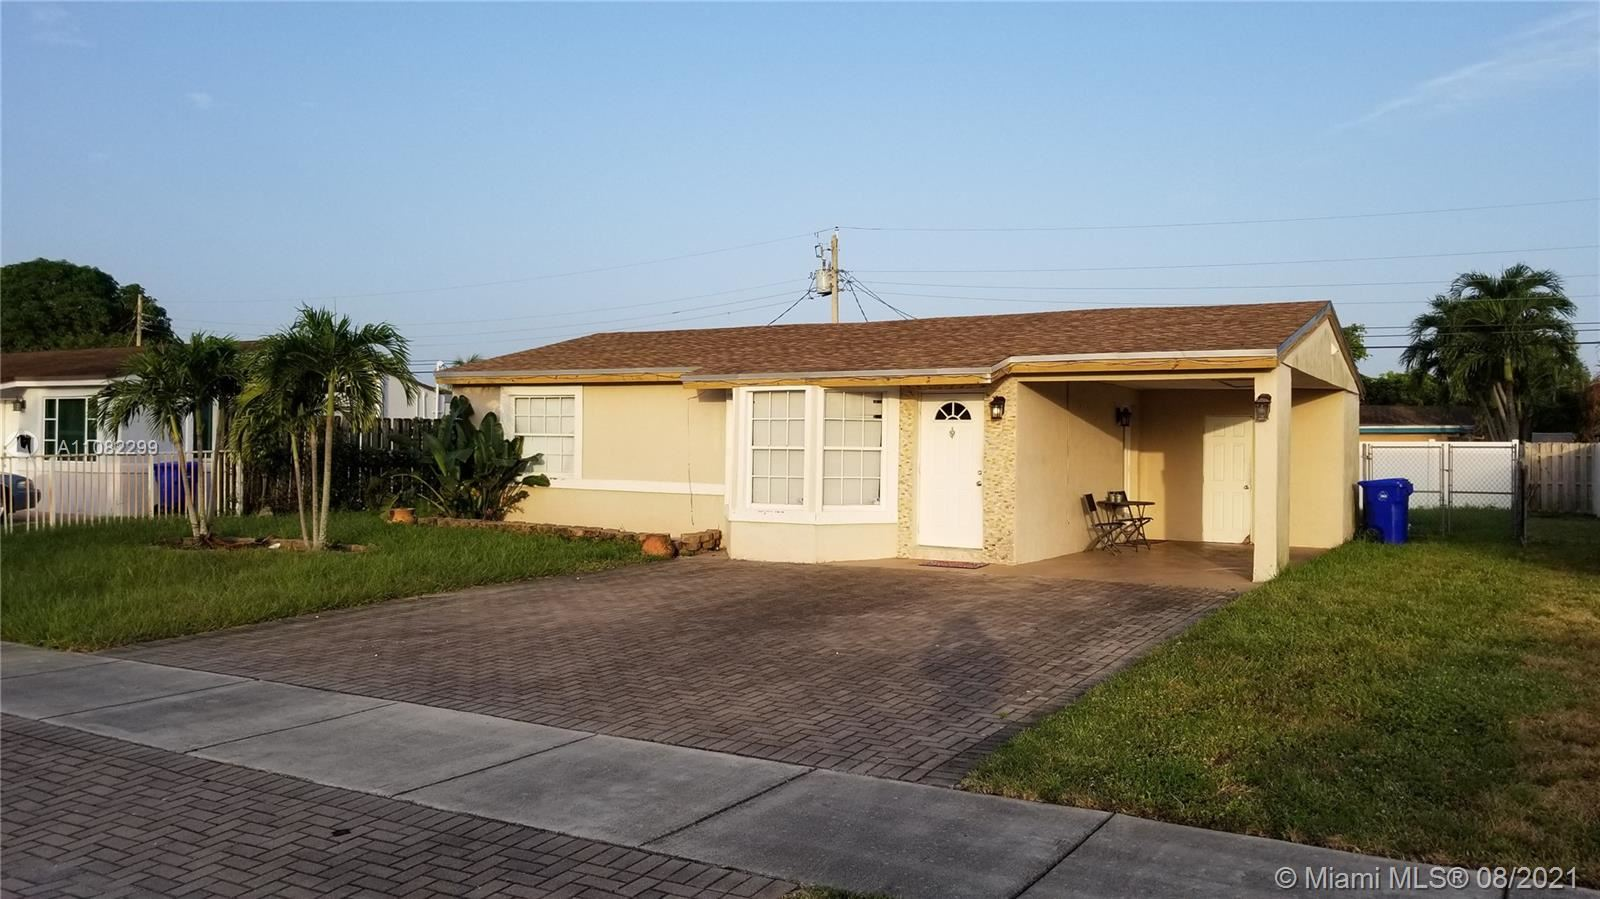 1449 SW 48th Ave, Fort Lauderdale, FL 33317 - #: A11082299